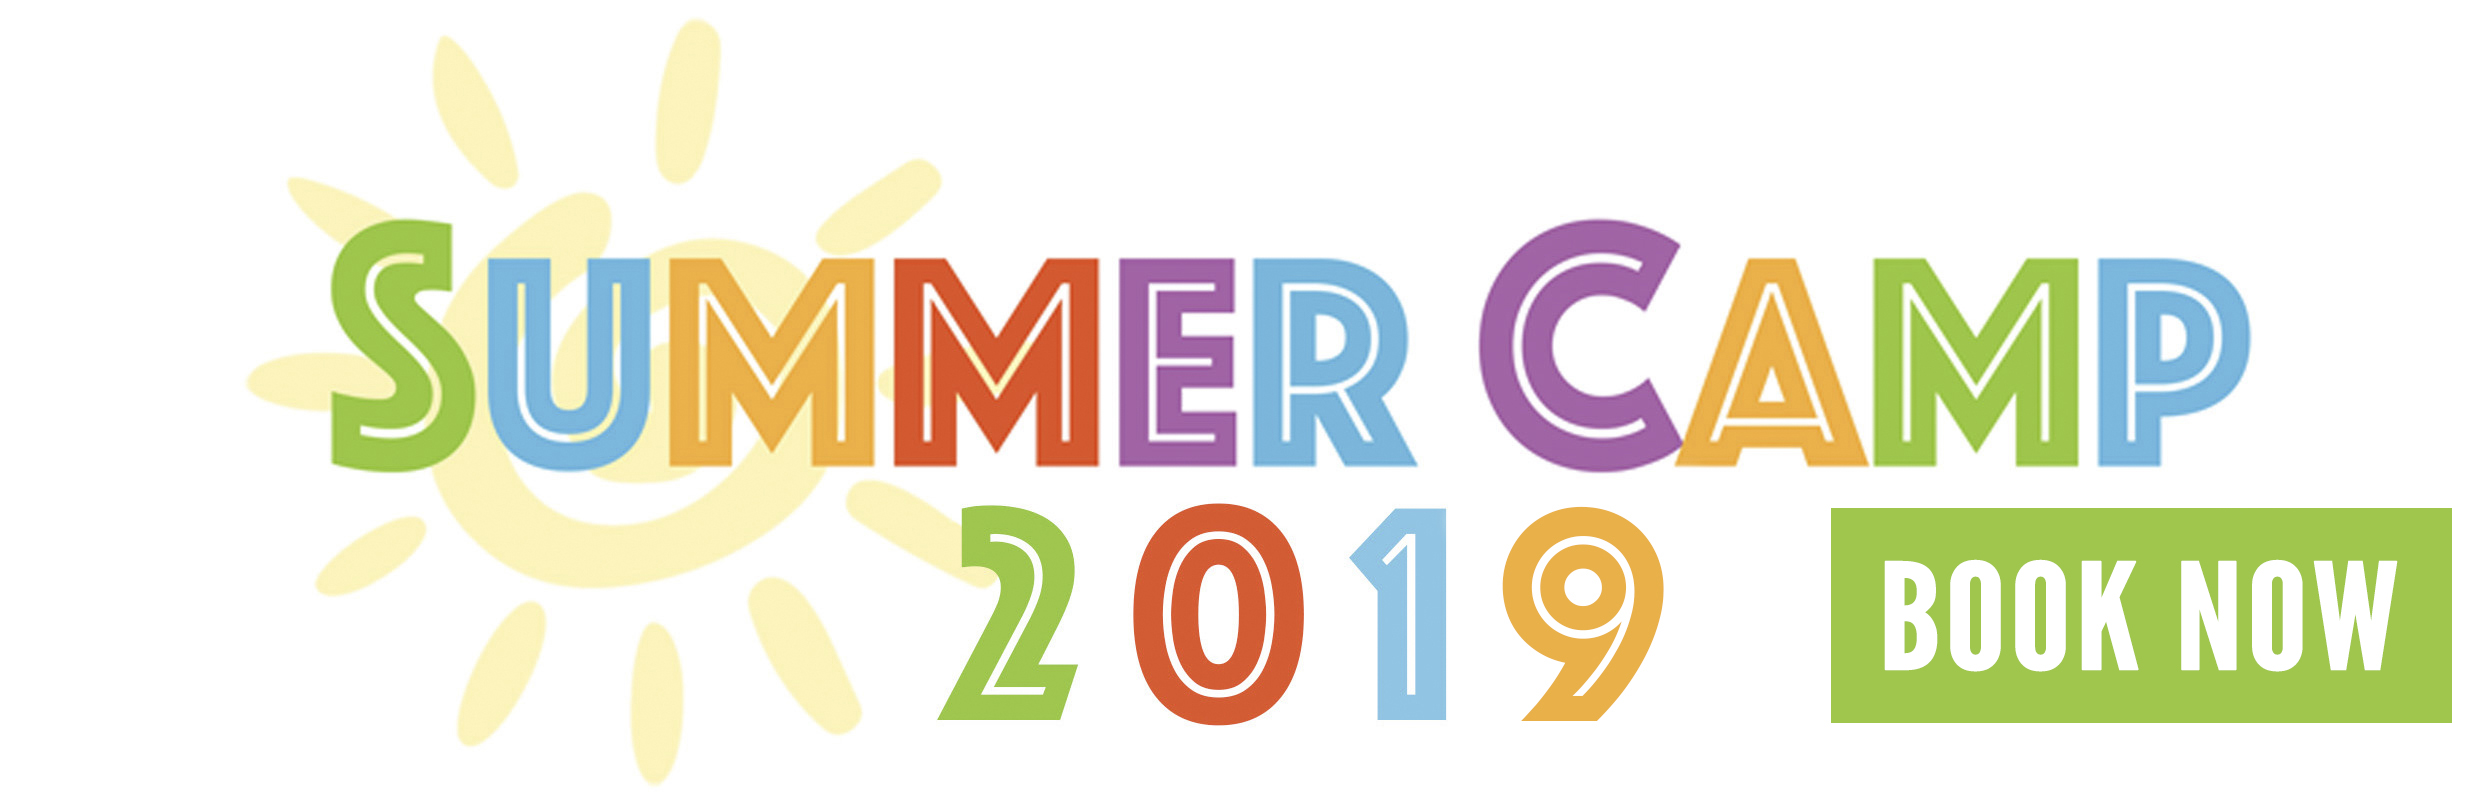 Not sure what do with your children this summer? - Then why not book them into a summer camp and let them have fun in the gym and get lunch provided